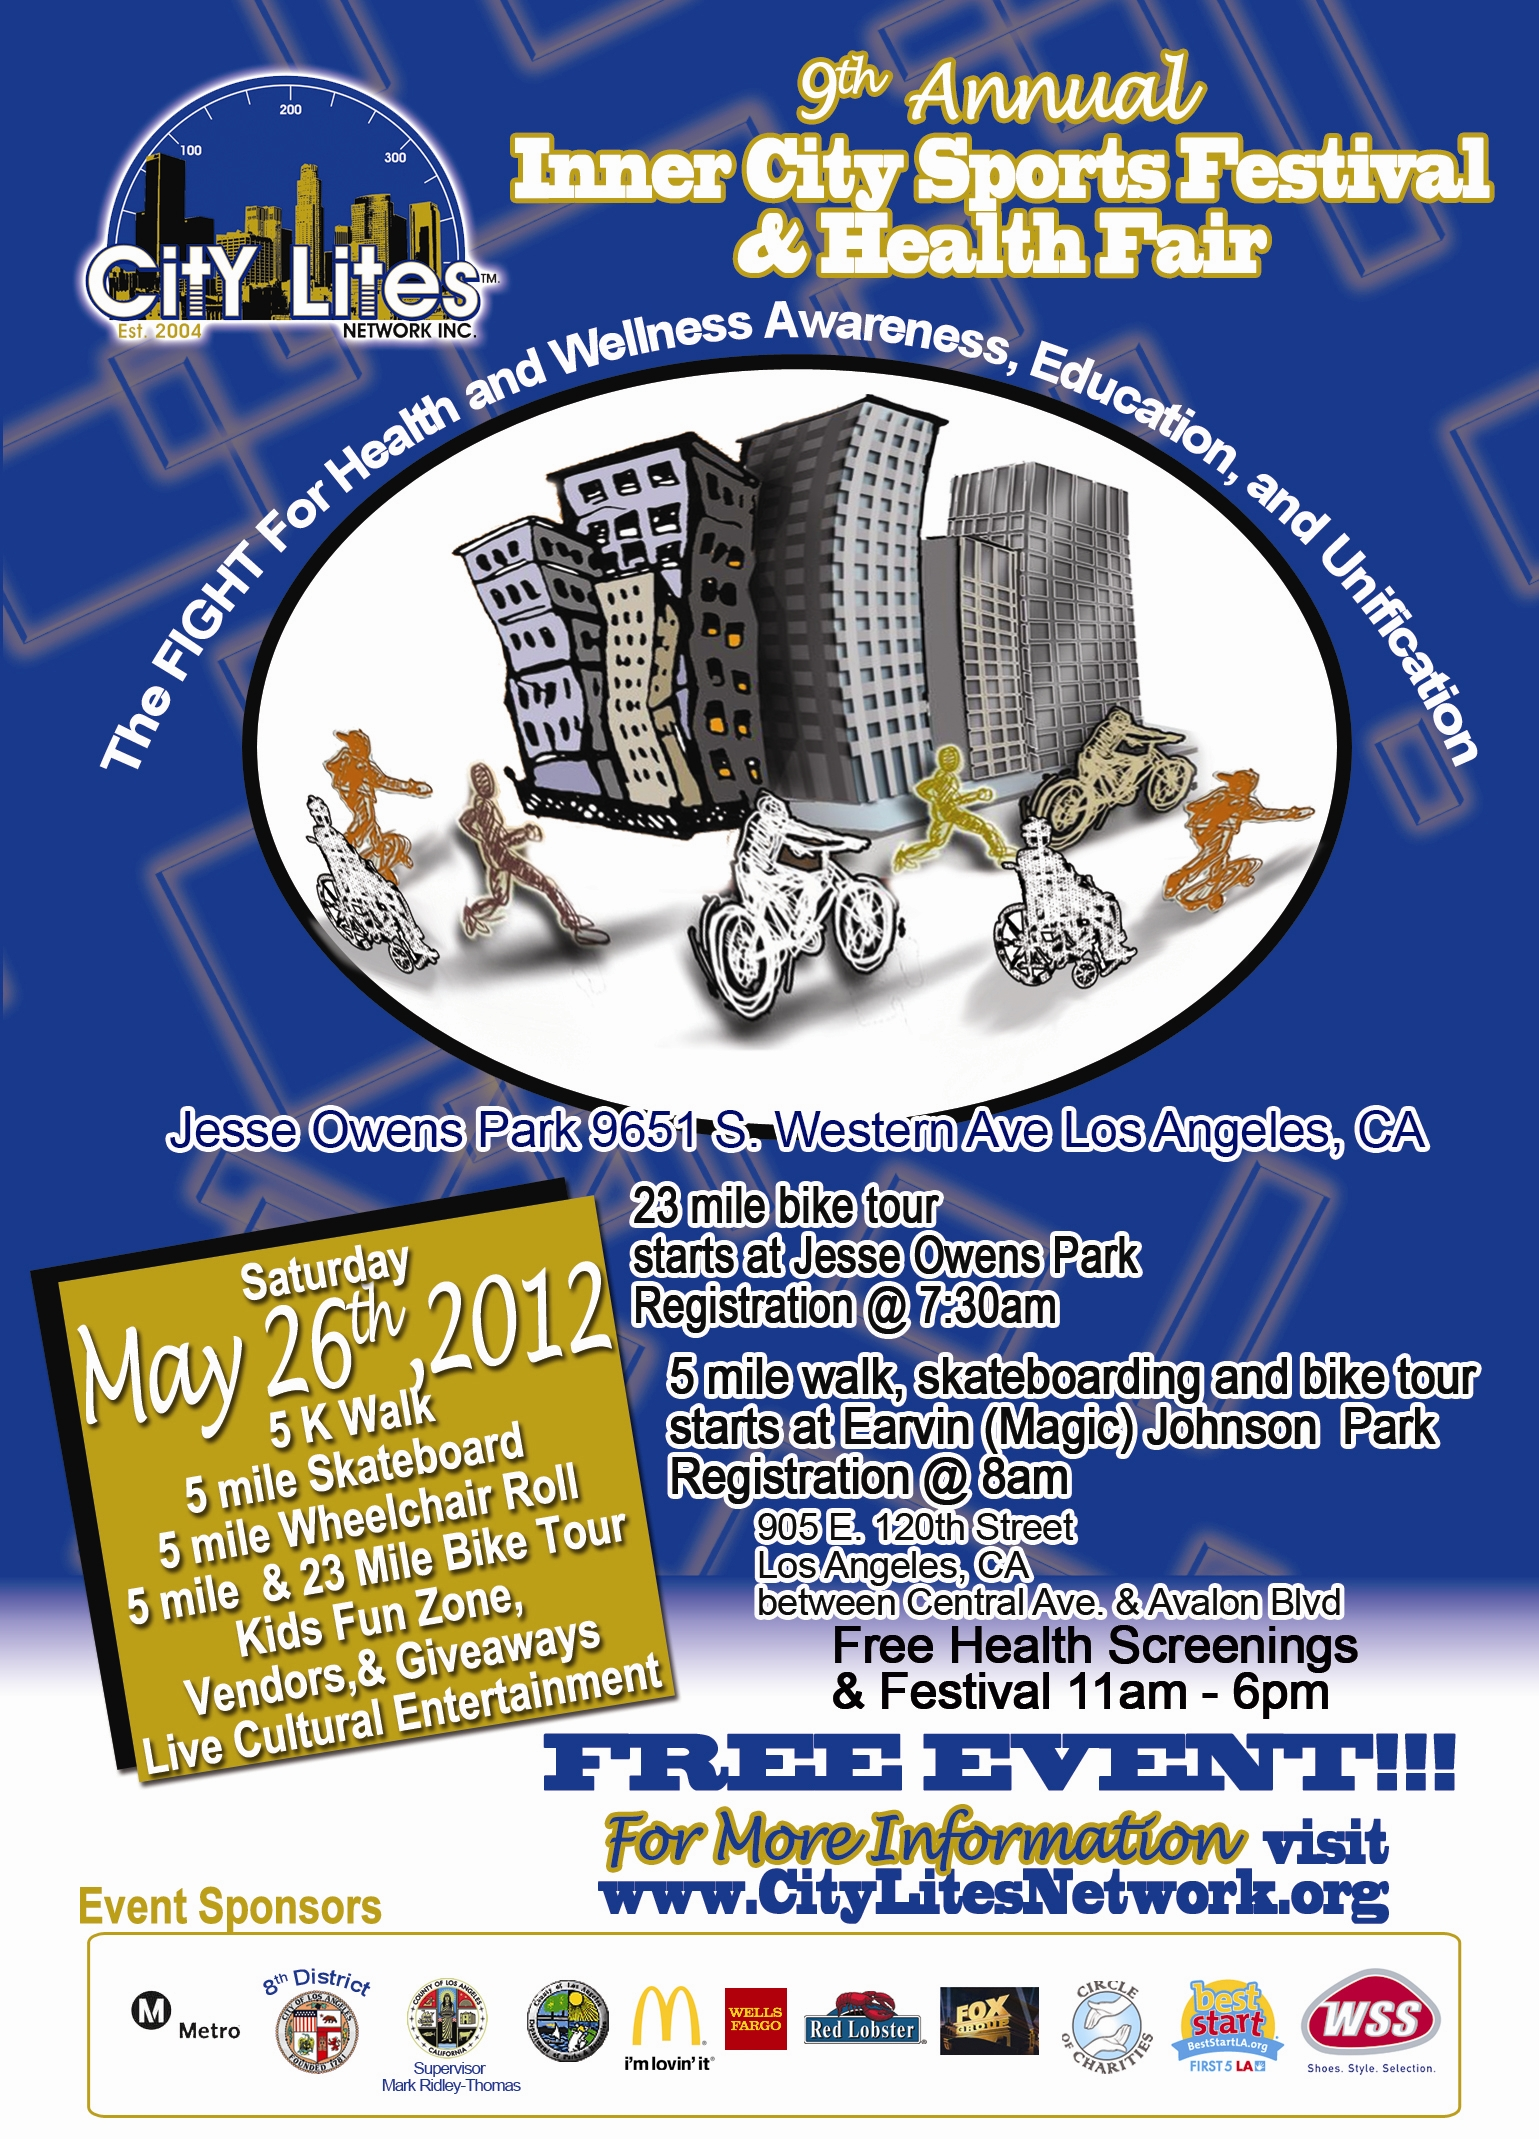 Inner City Sports Festival & Health Fair